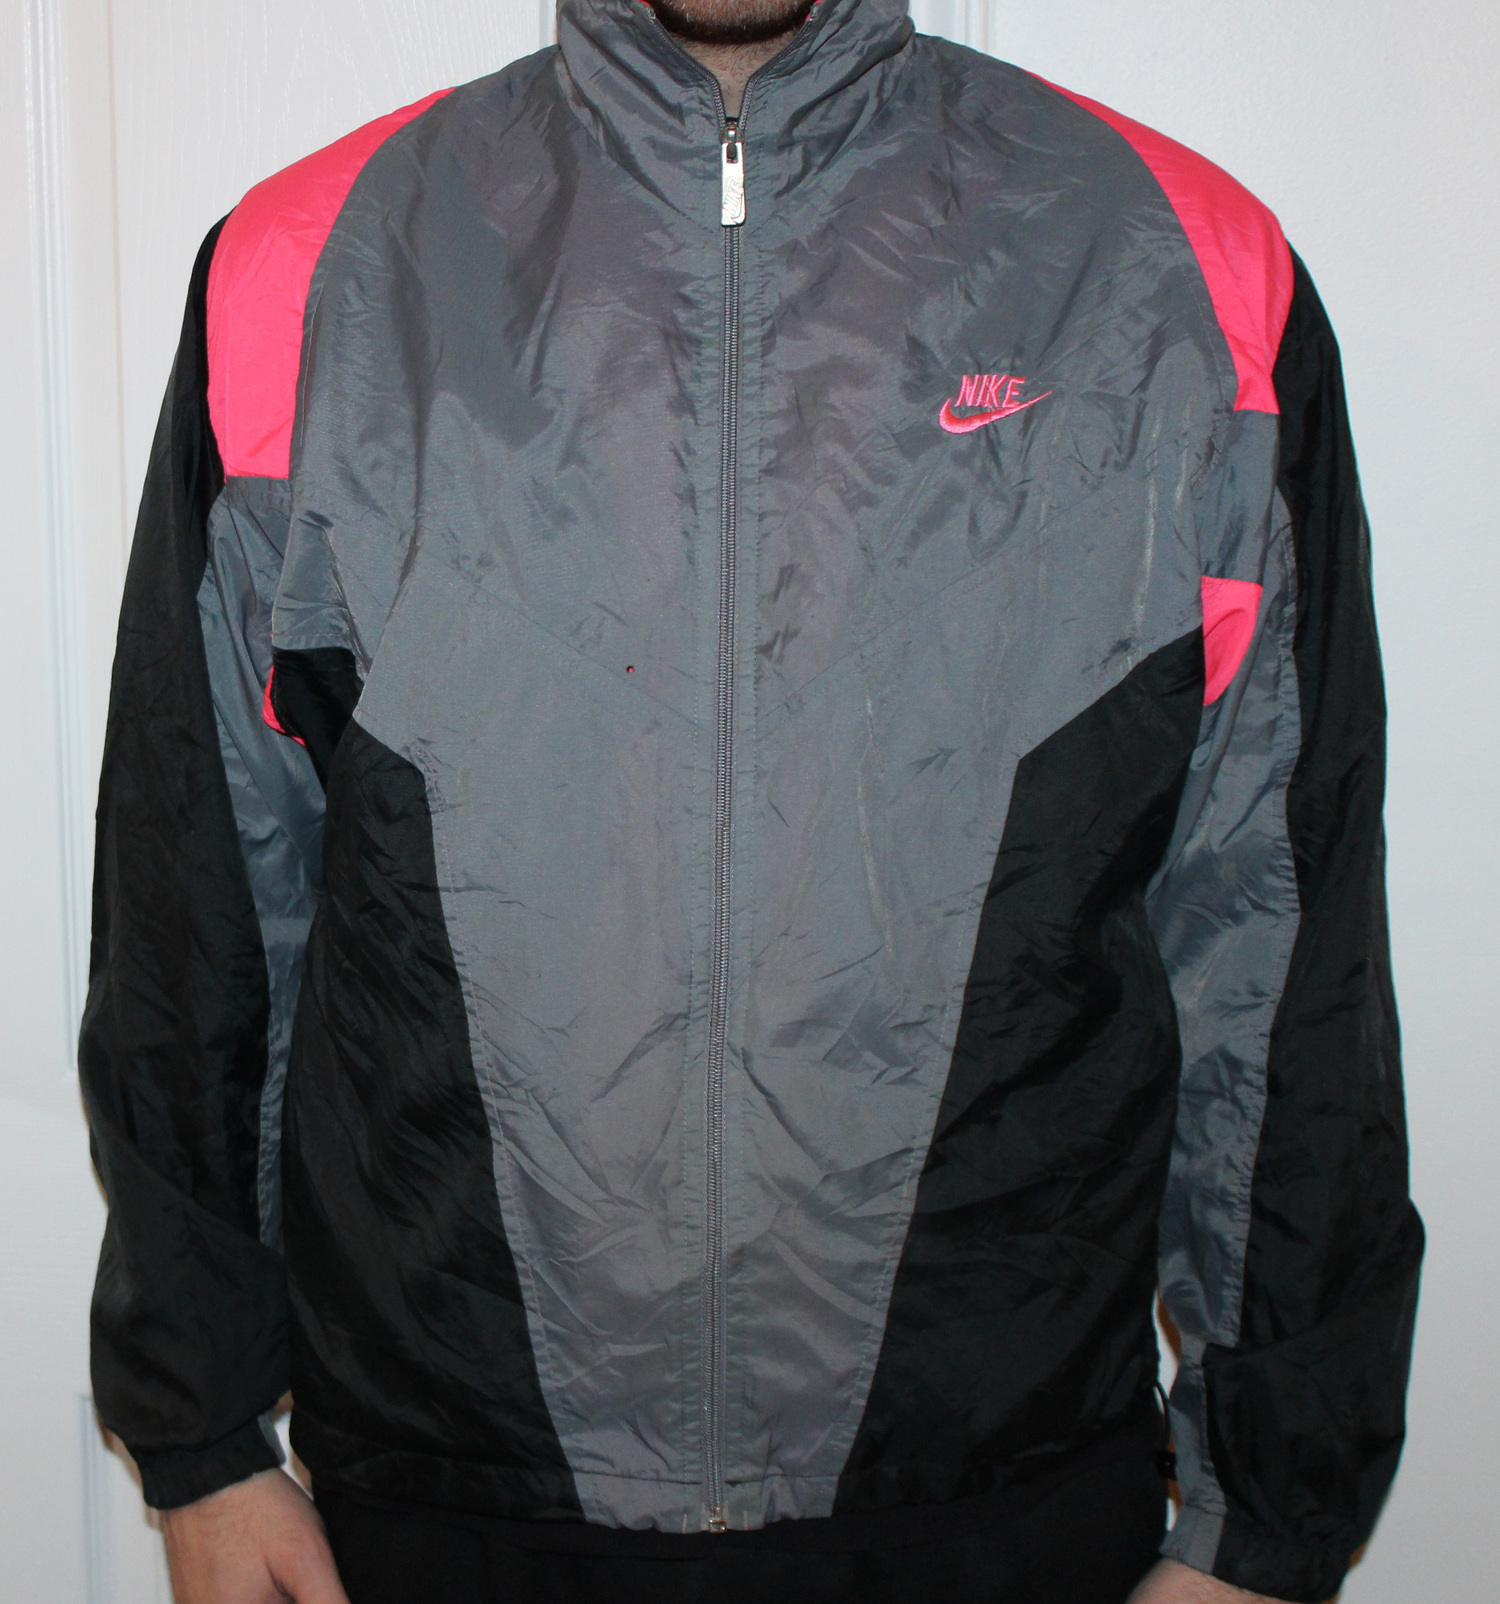 7d979f86bc42 Vintage Nike Windbreaker Grey   Black   Infrared (Size M) — Roots